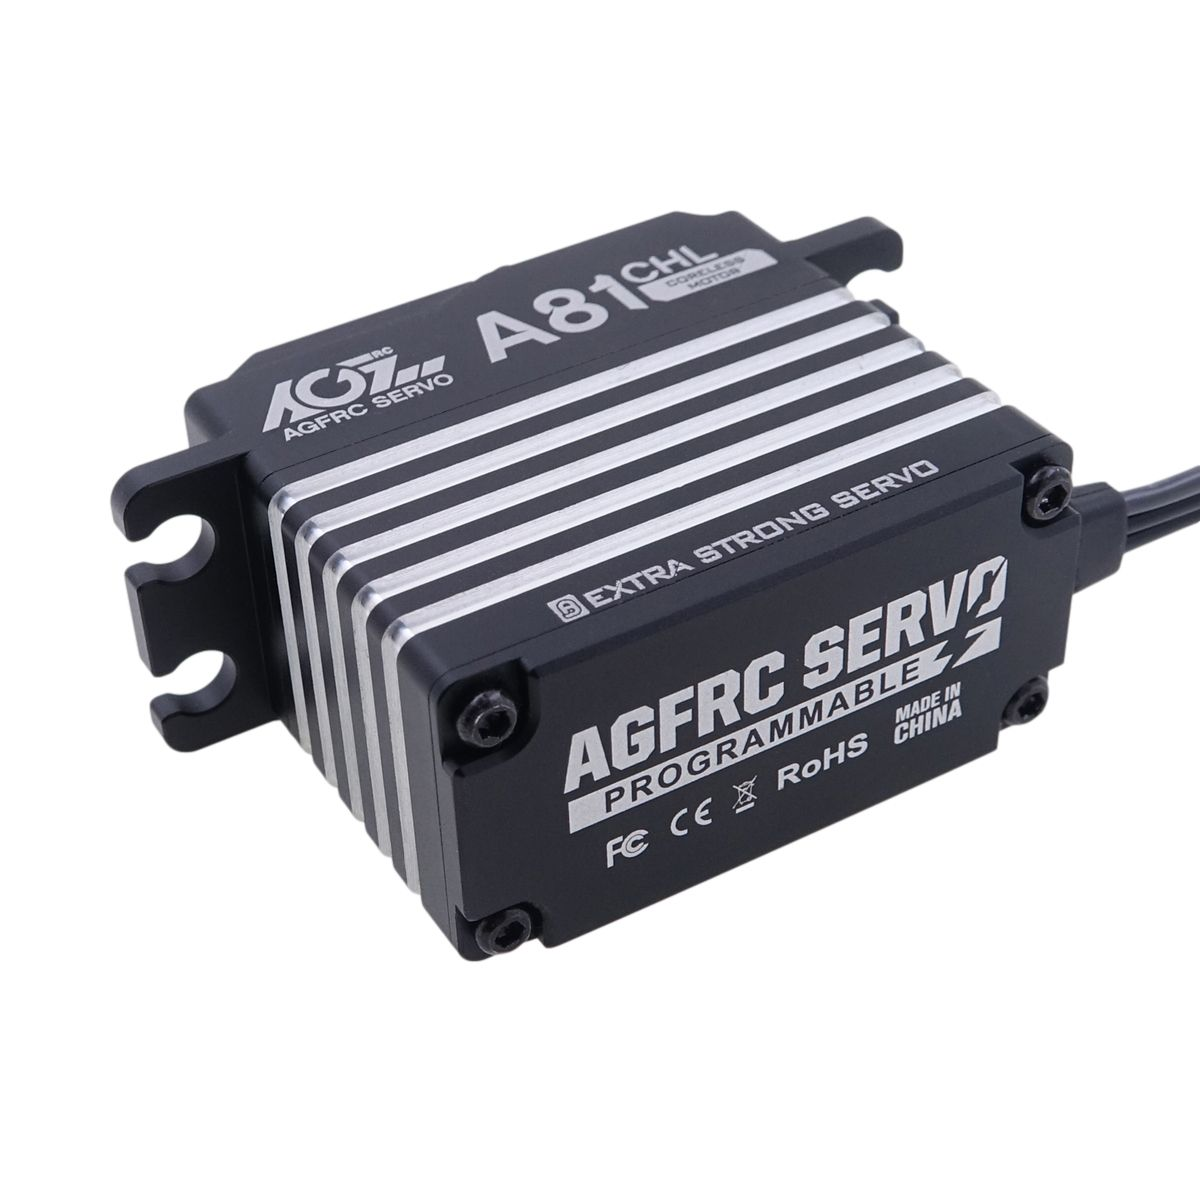 AGFRC A81CHL Heat Sink Case Extra Strong Gear Train 50KG HV Coreless Servo